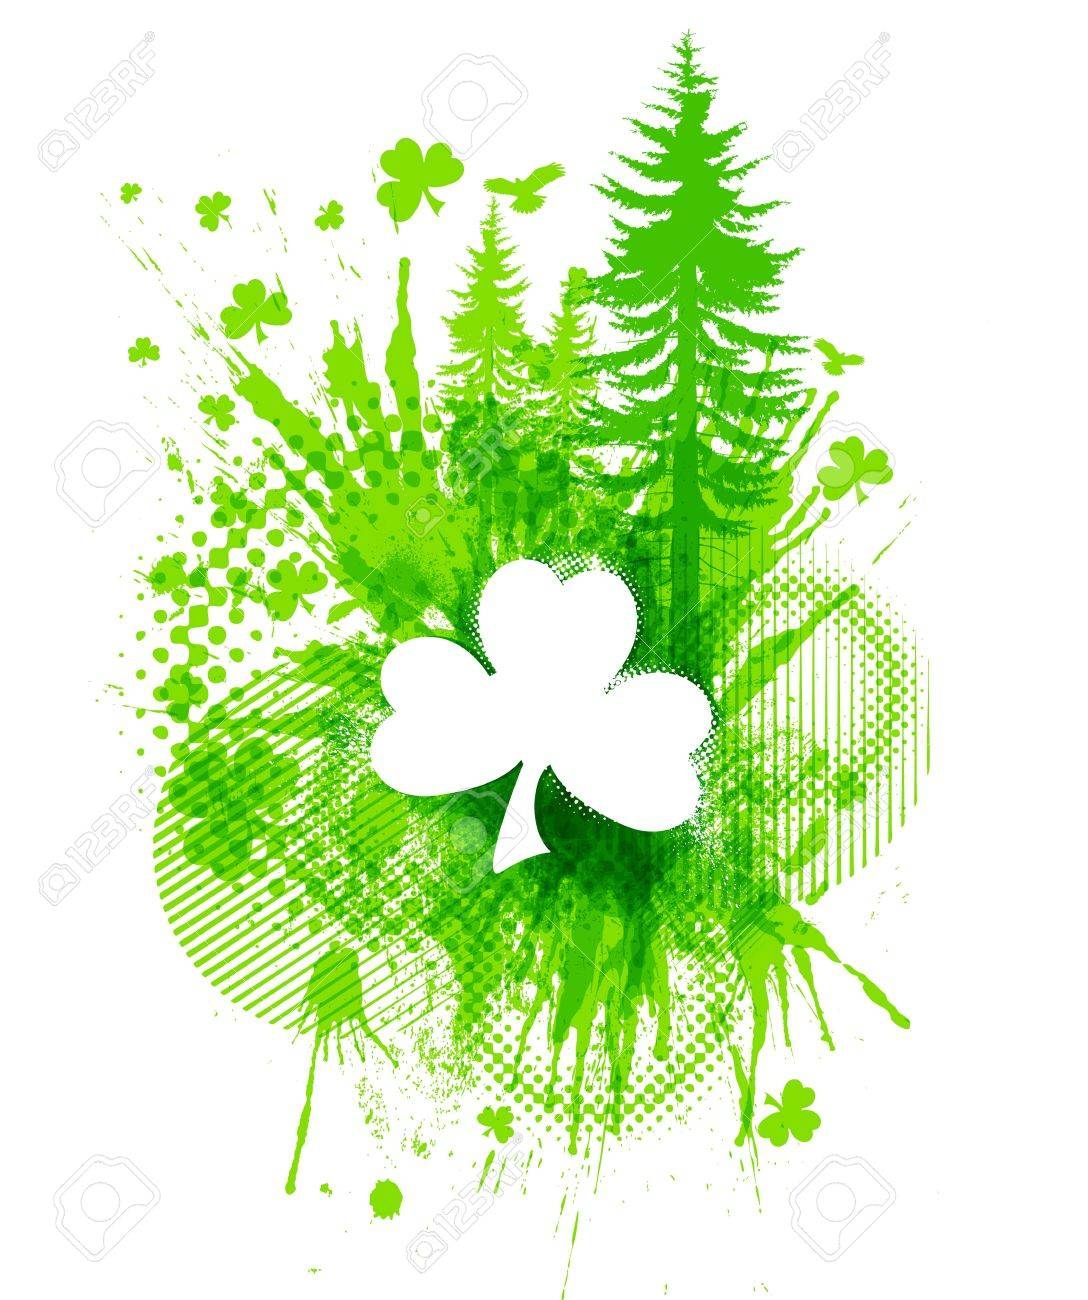 Abstract St. Patricks lucky clover collage illustration Stock Vector - 13109500